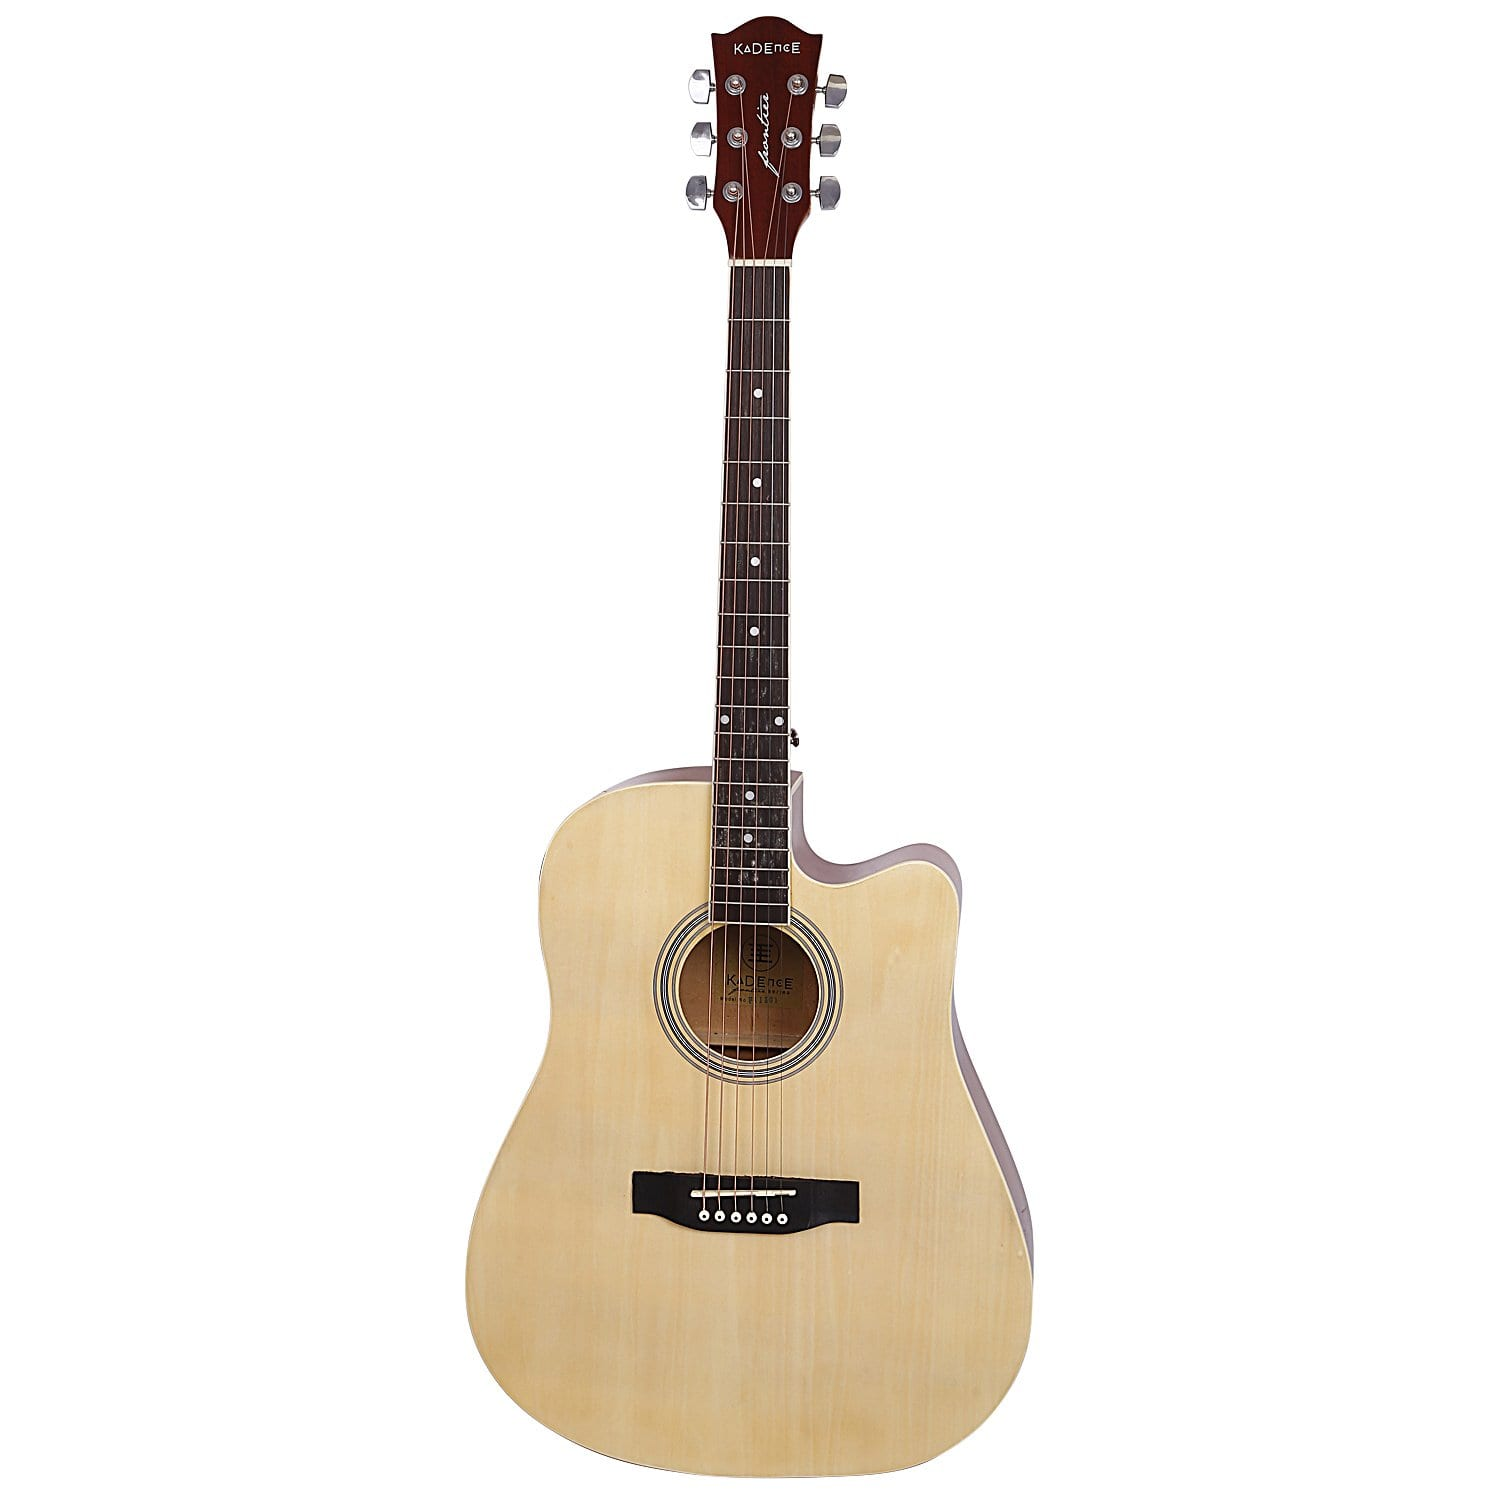 Kadence Frontier Series Acoustic